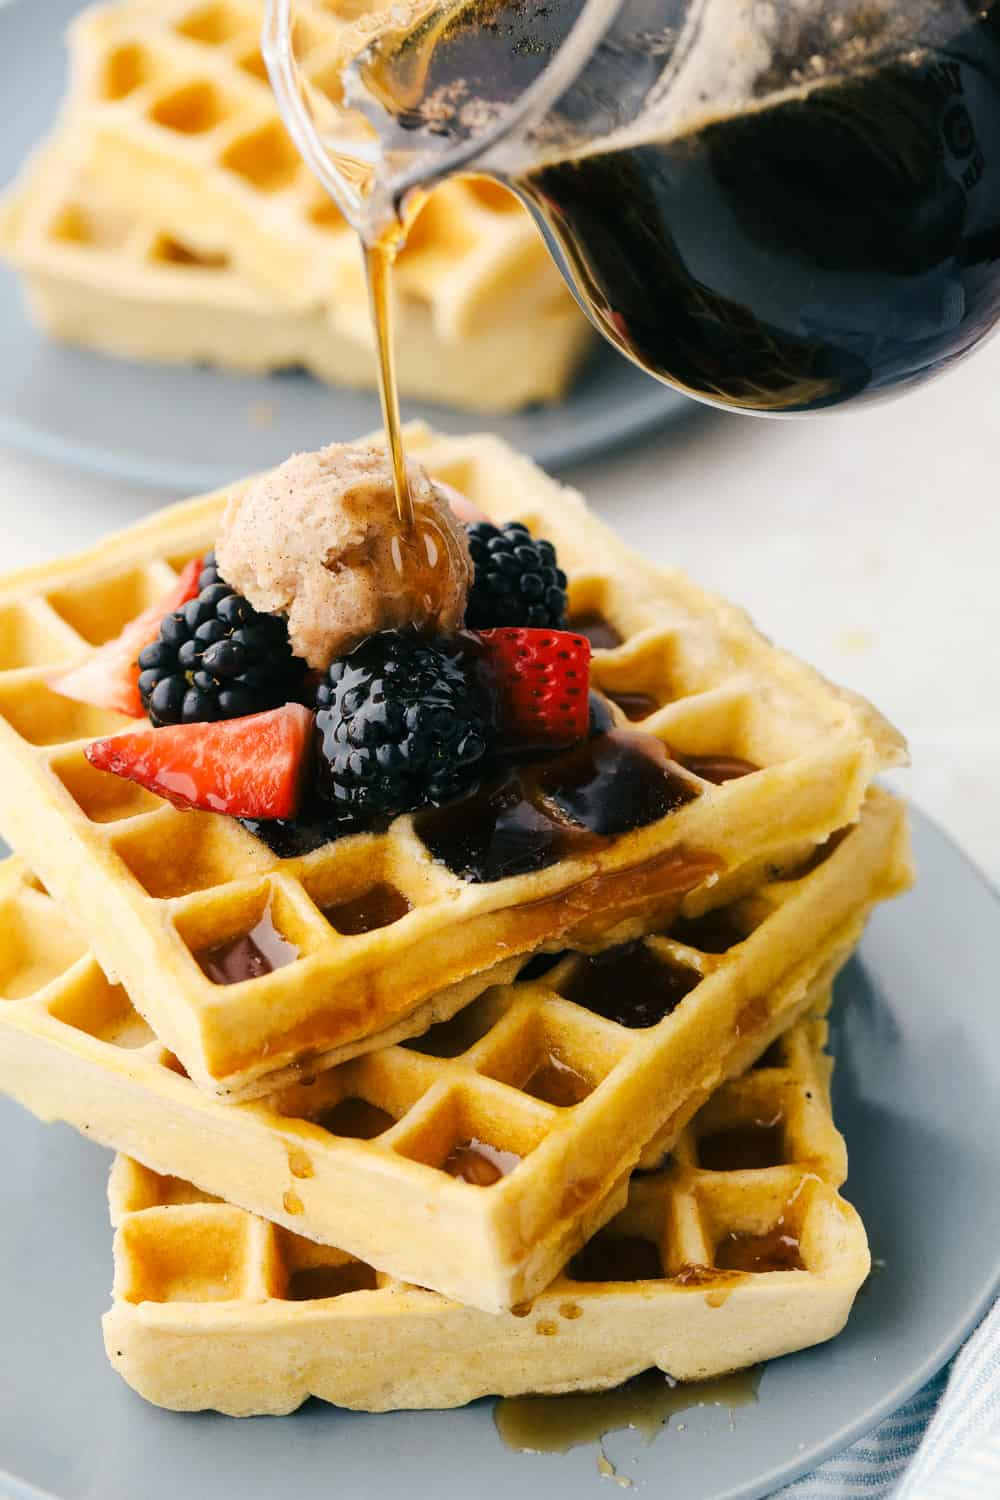 Drizzling syrup on top of a stack of homemade waffles.